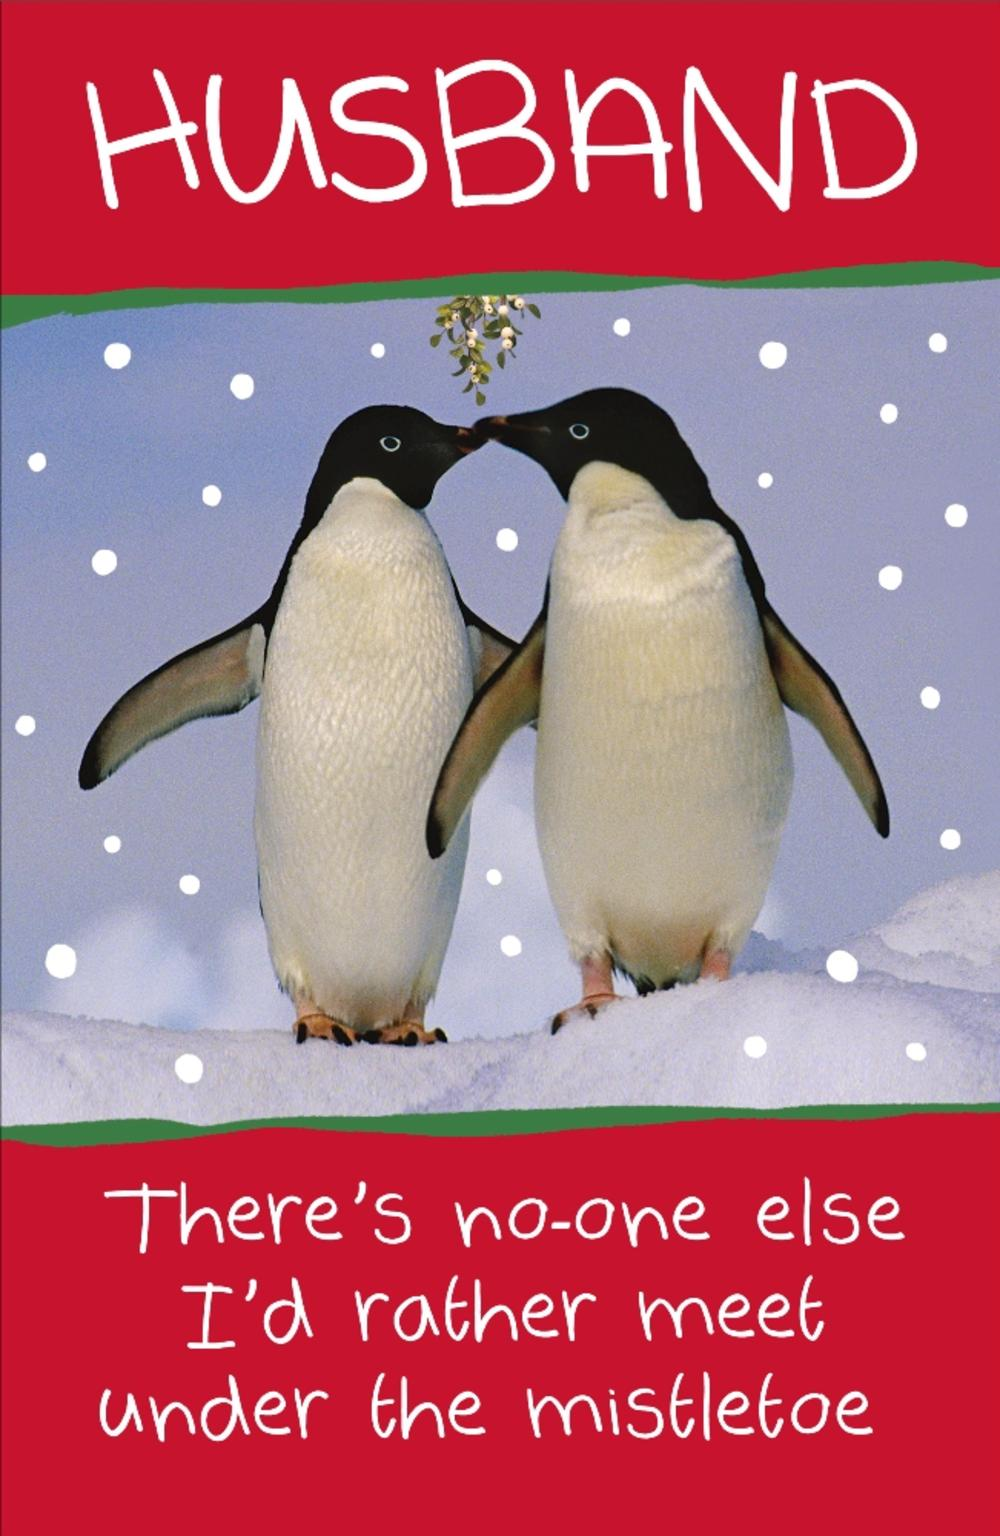 Husband Funny Animal Humour Christmas Greeting Card Cards Love Kates